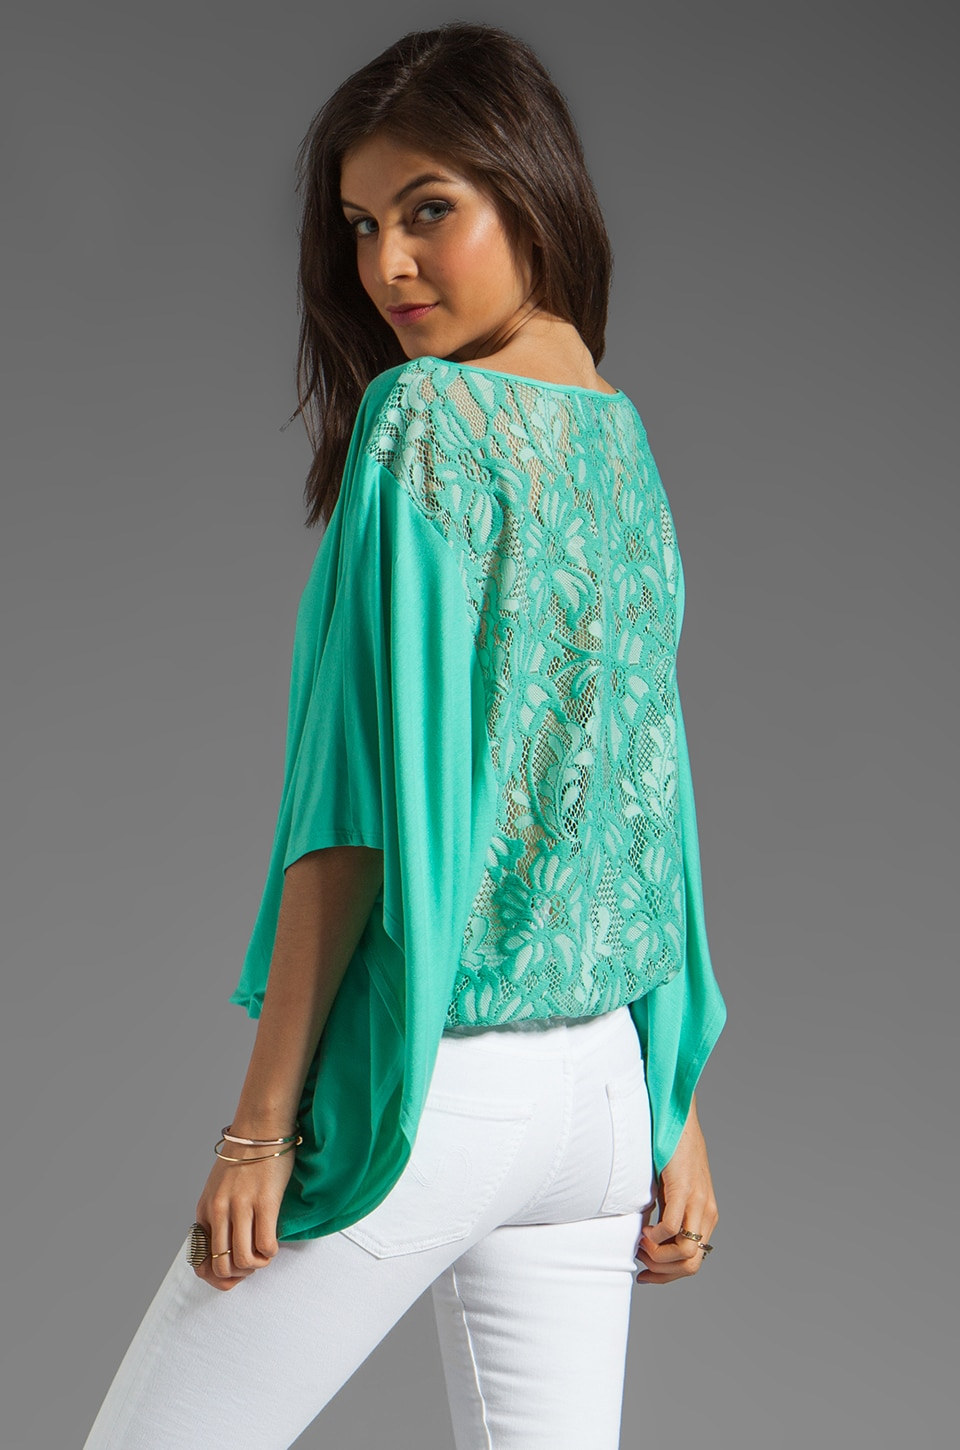 VAVA by Joy Han Skyler Lace Back Top in Seafoam